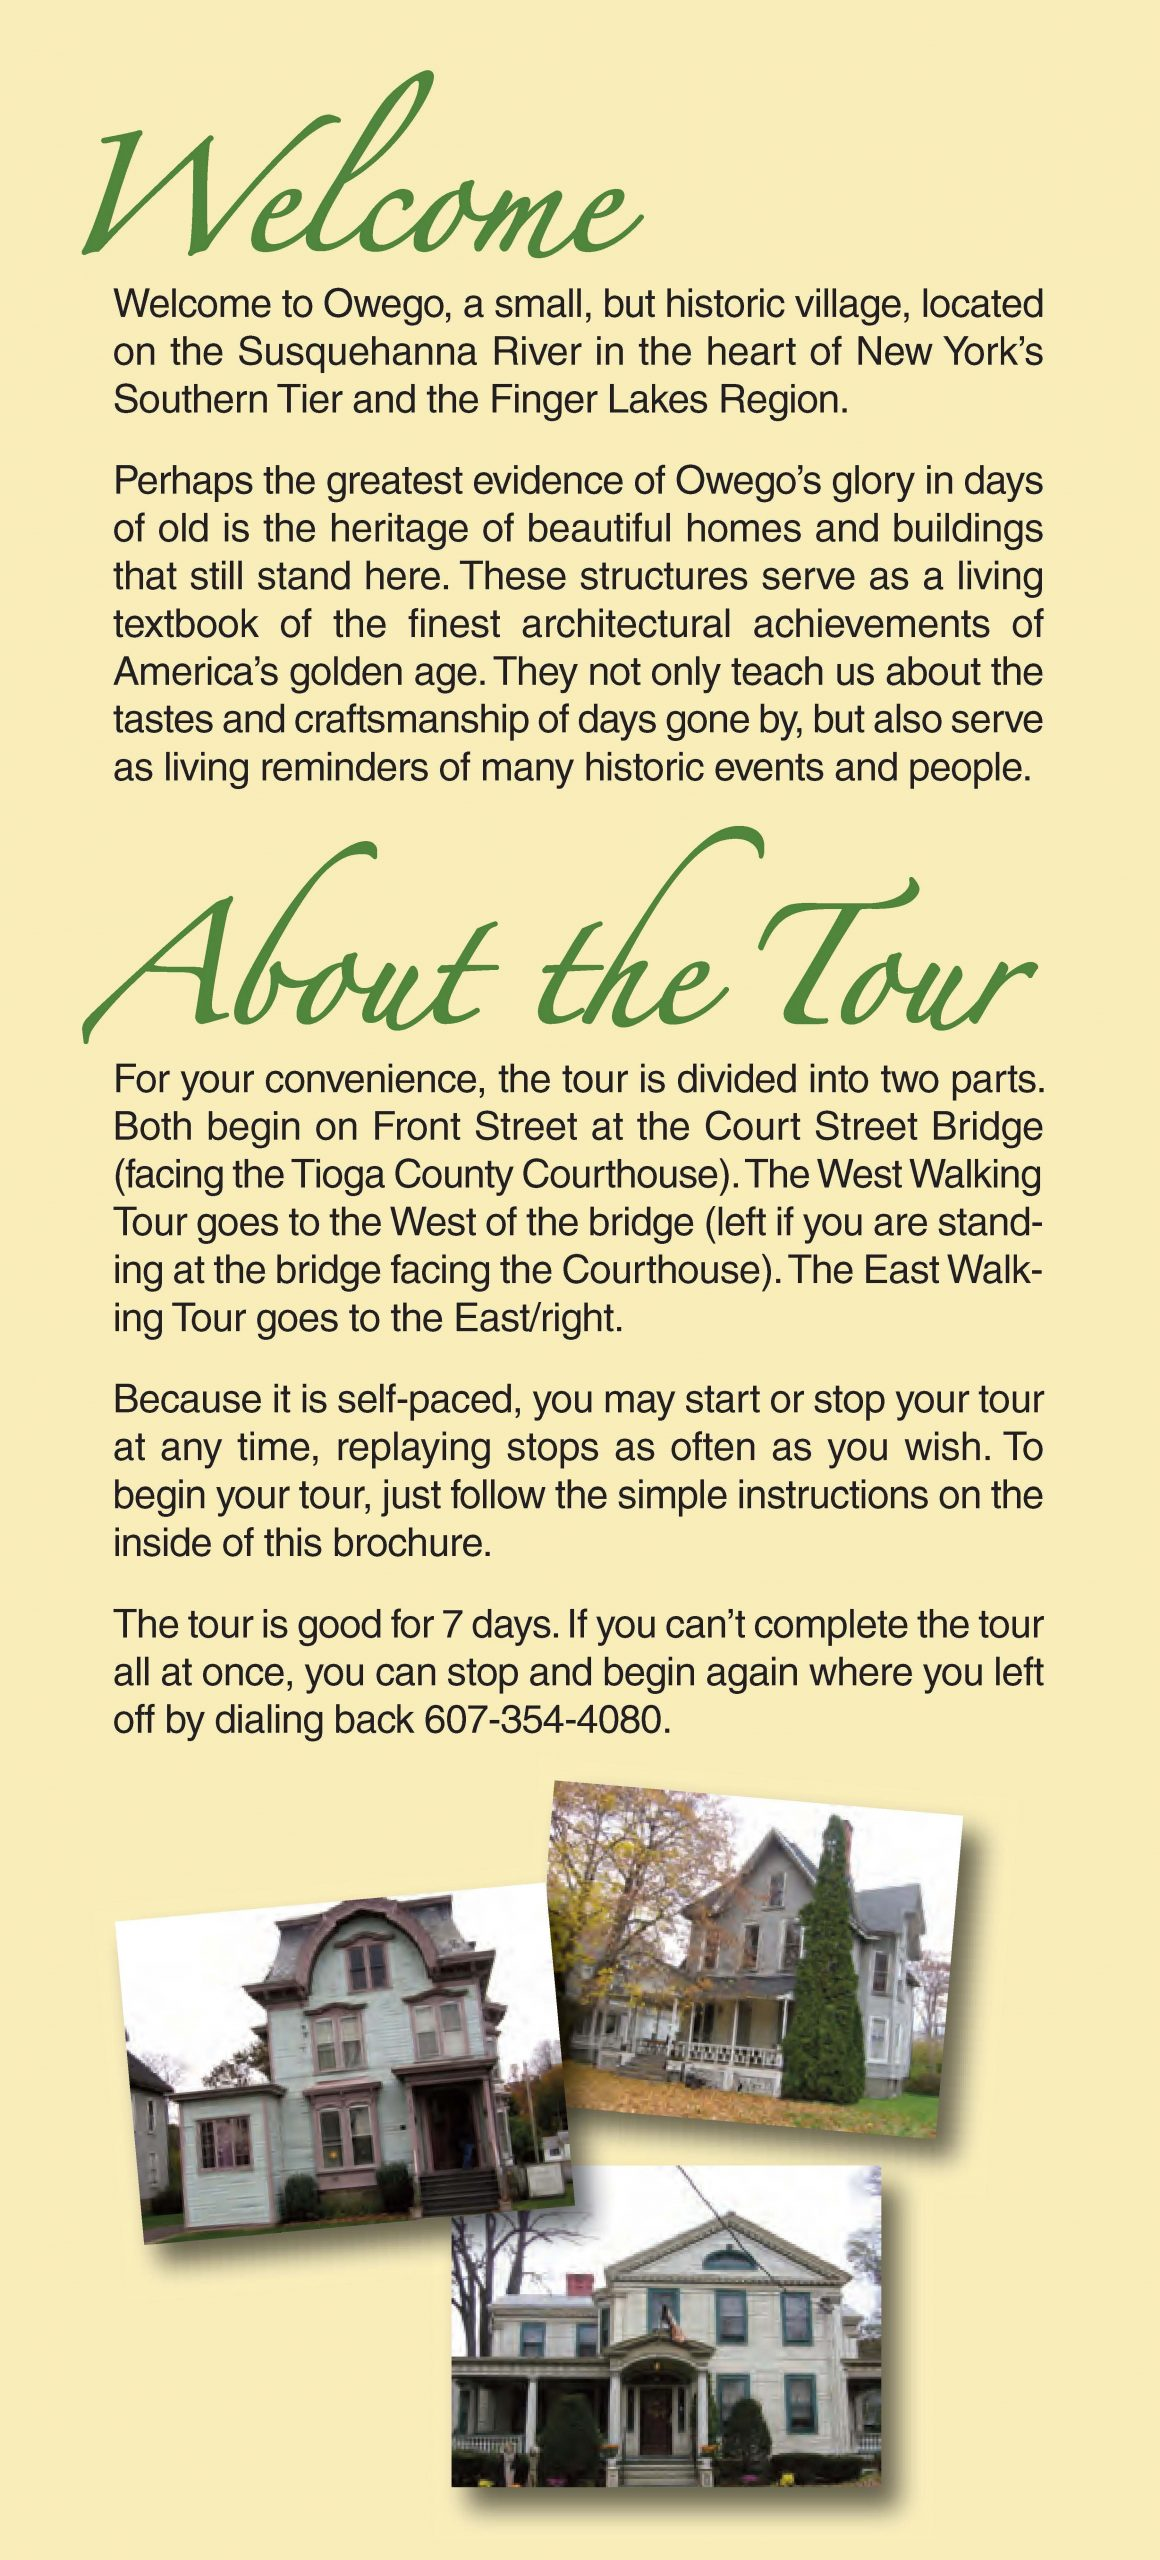 Historic Owego Walking Tour Brochure Page 2_Page_1